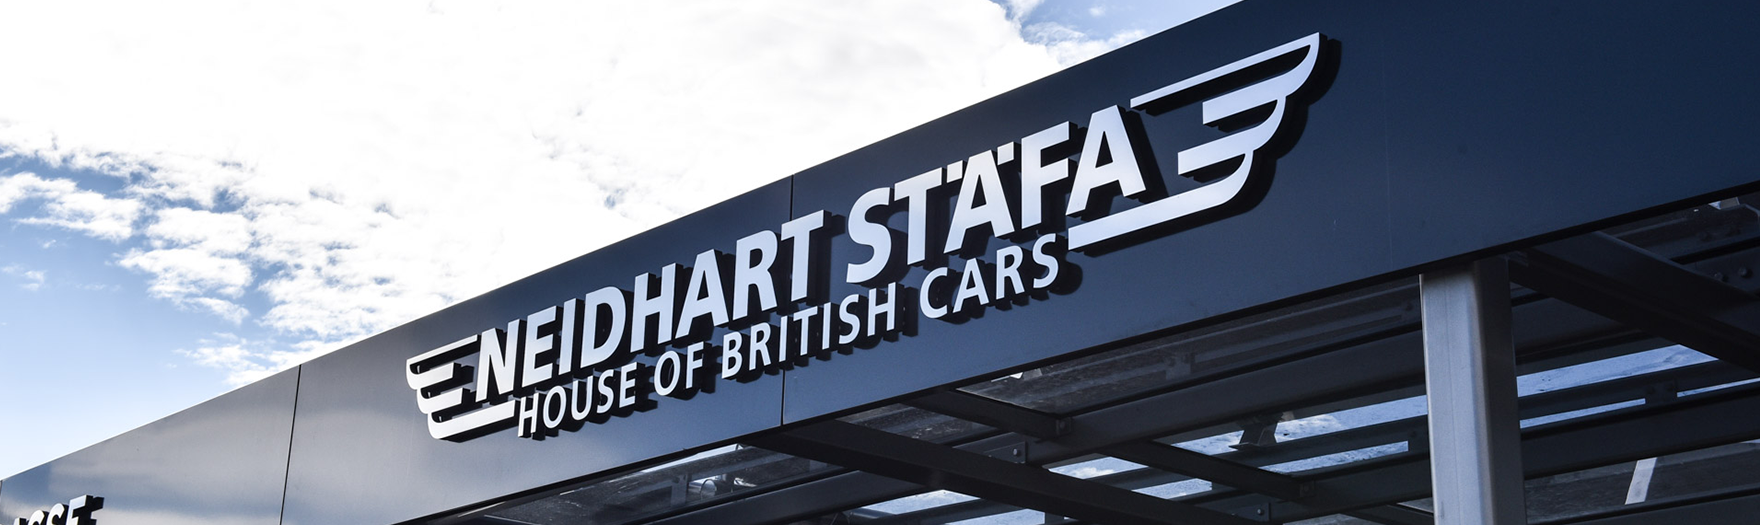 Neidhart Stäfa AG - House of British Cars, seit 1978 in Stäfa am Zürichsee - Jaguar, Bentley, Rolls Royce, Land-Rover, Range-Rover